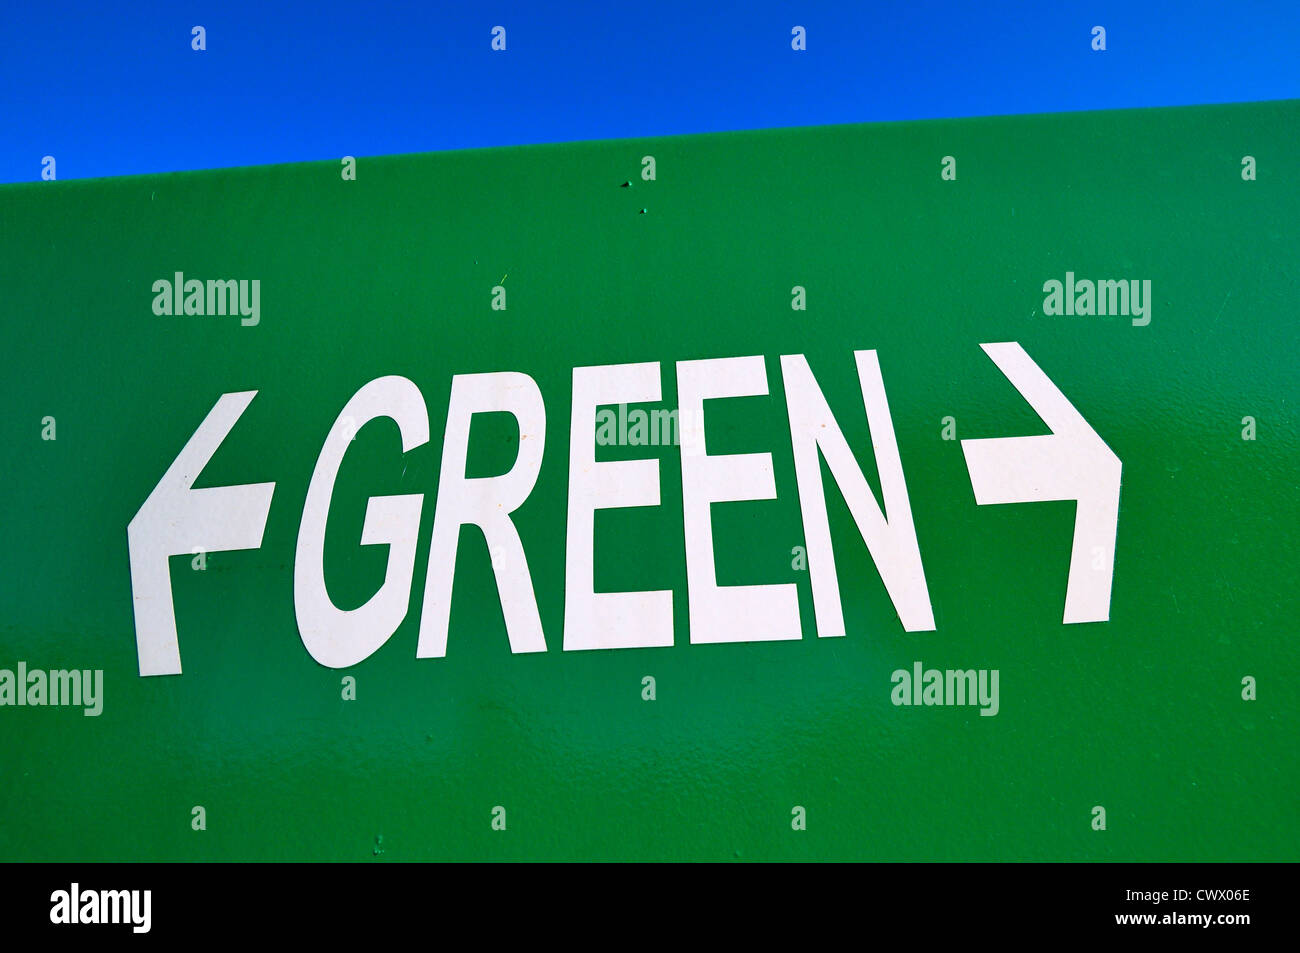 Green recycling - Stock Image